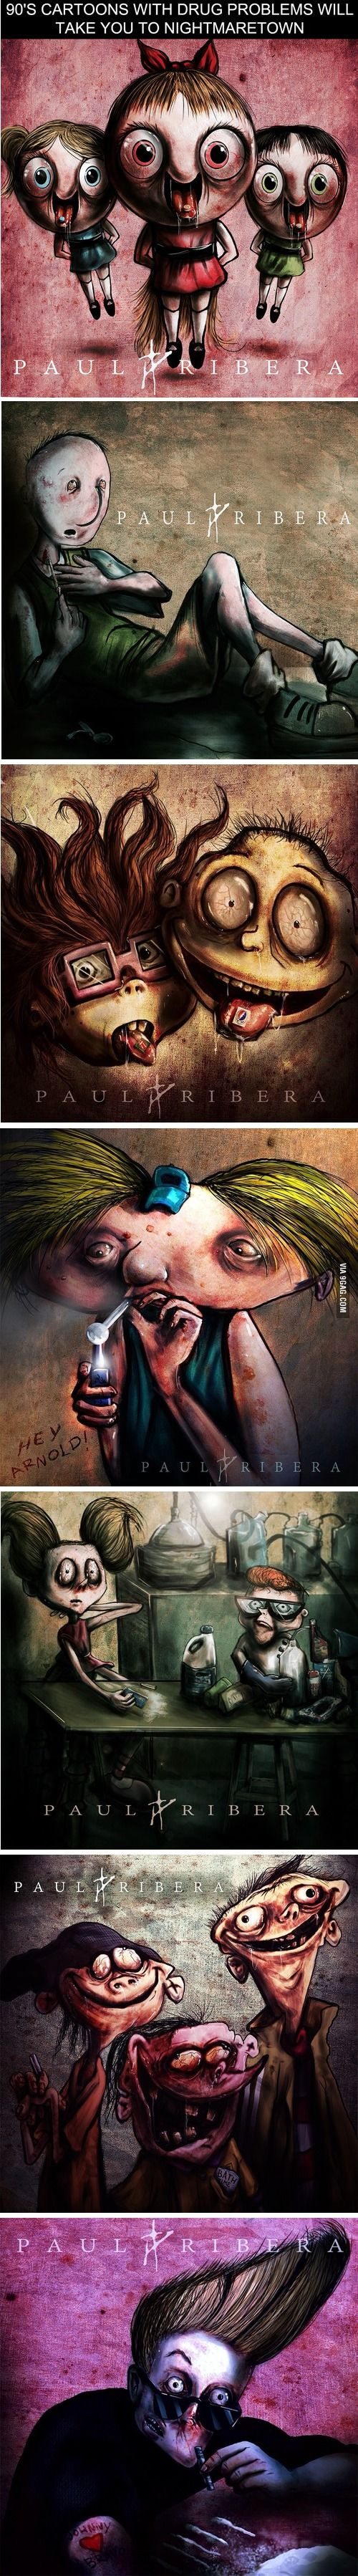 90's Cartoons With Drug Problems Will Take You to Nightmaretown